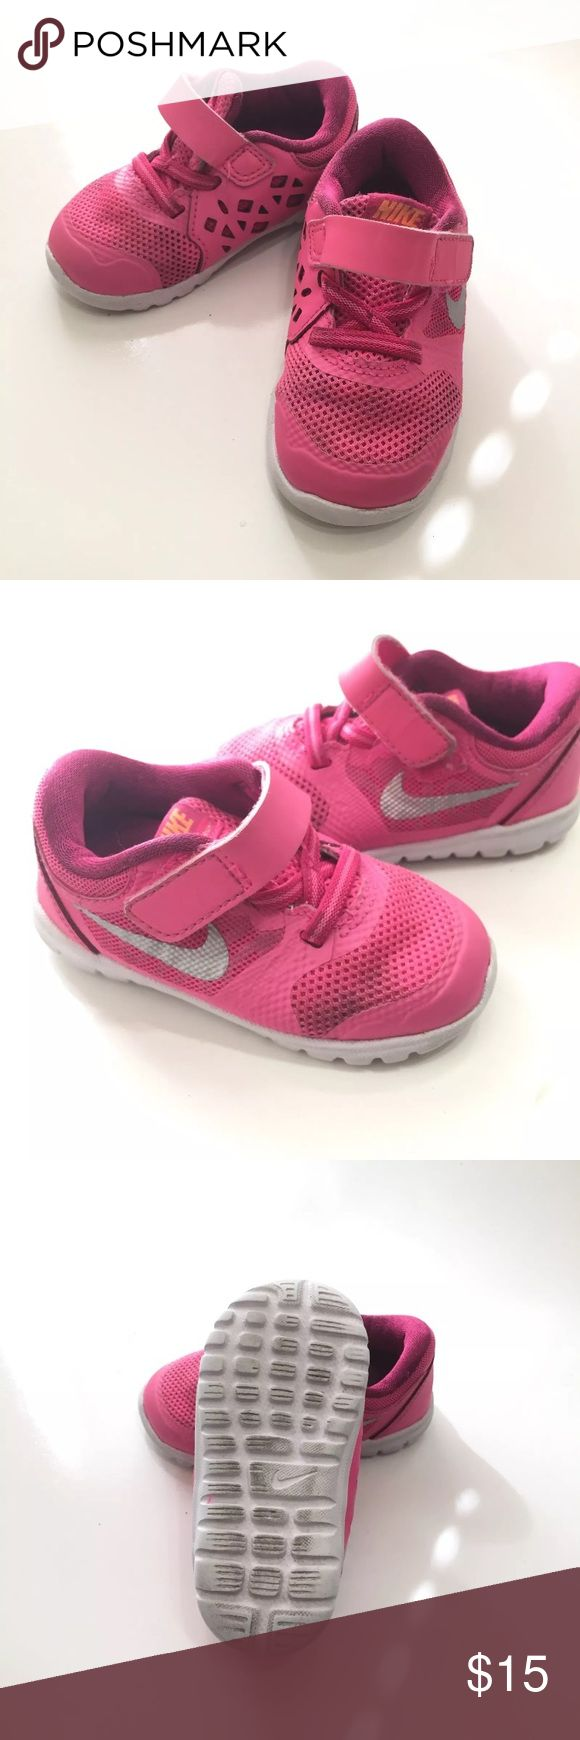 Girls Nike Flex Experience Pink Size 5 These preloved Nikes are in good condition. Just need to be cleaned Pink & white Brand: Nike Size: 5c toddler Nike Shoes Sneakers